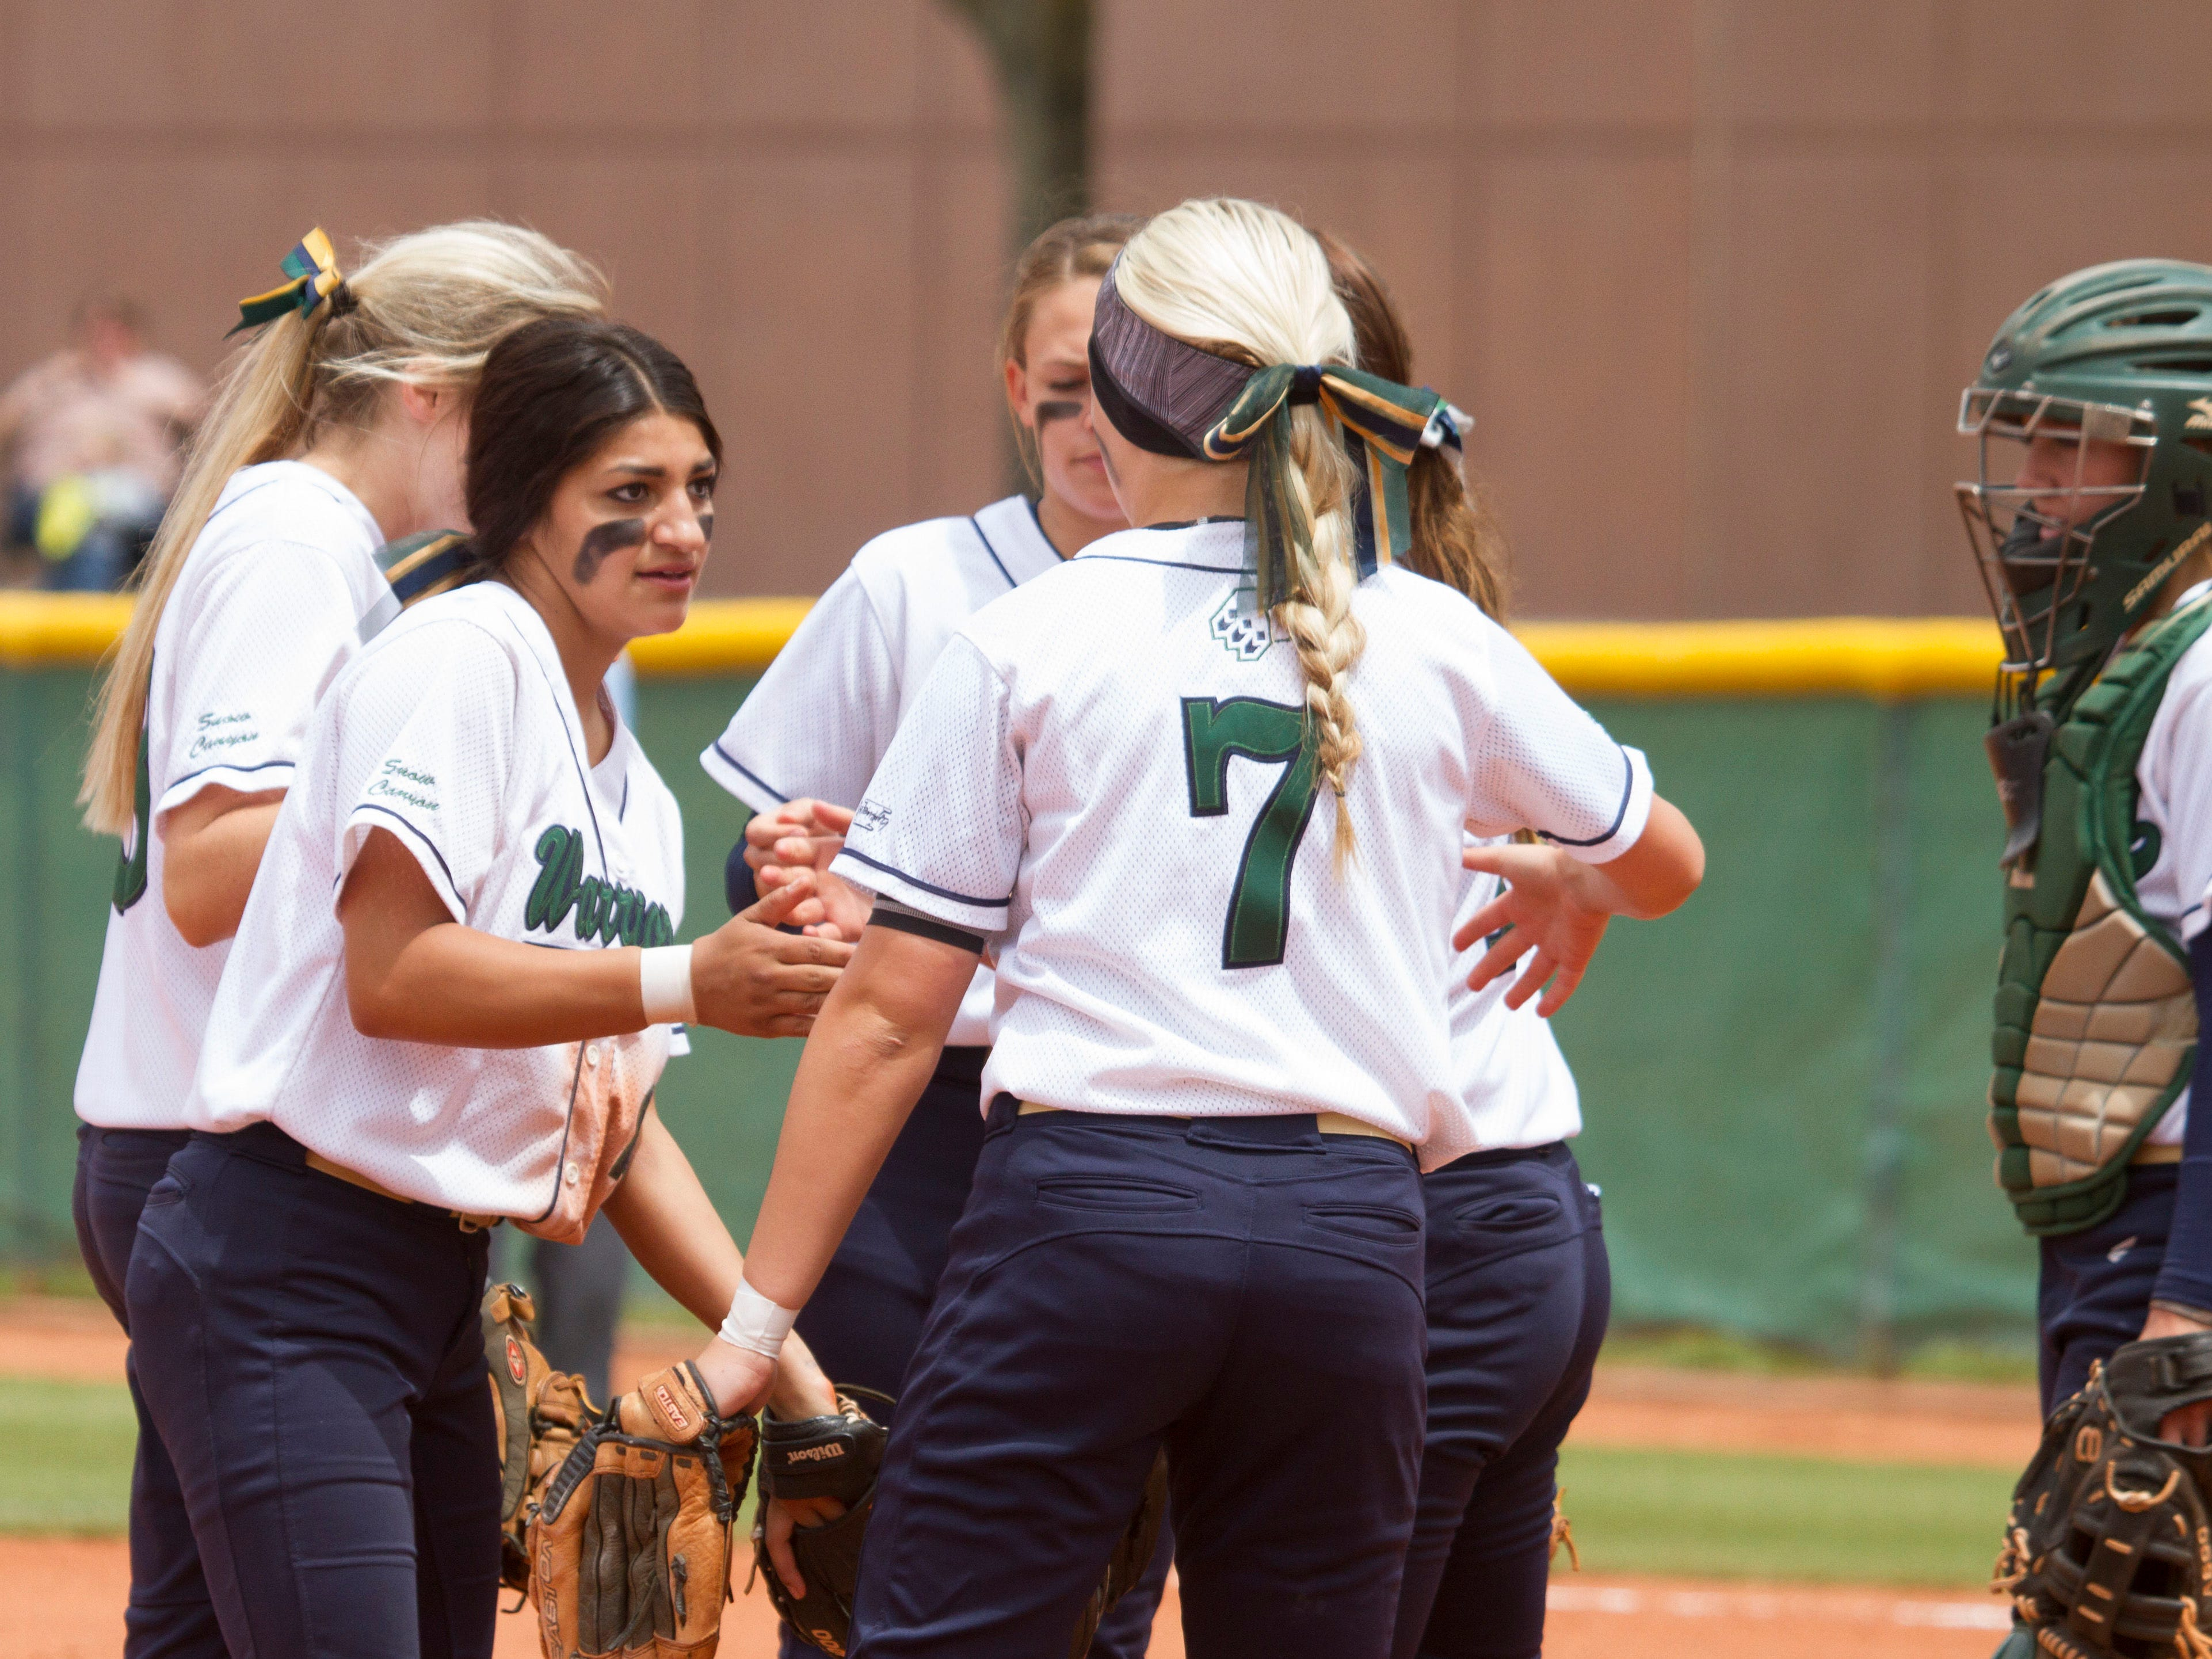 Snow Canyon softball players cheer each other on against Morgan on Saturday.